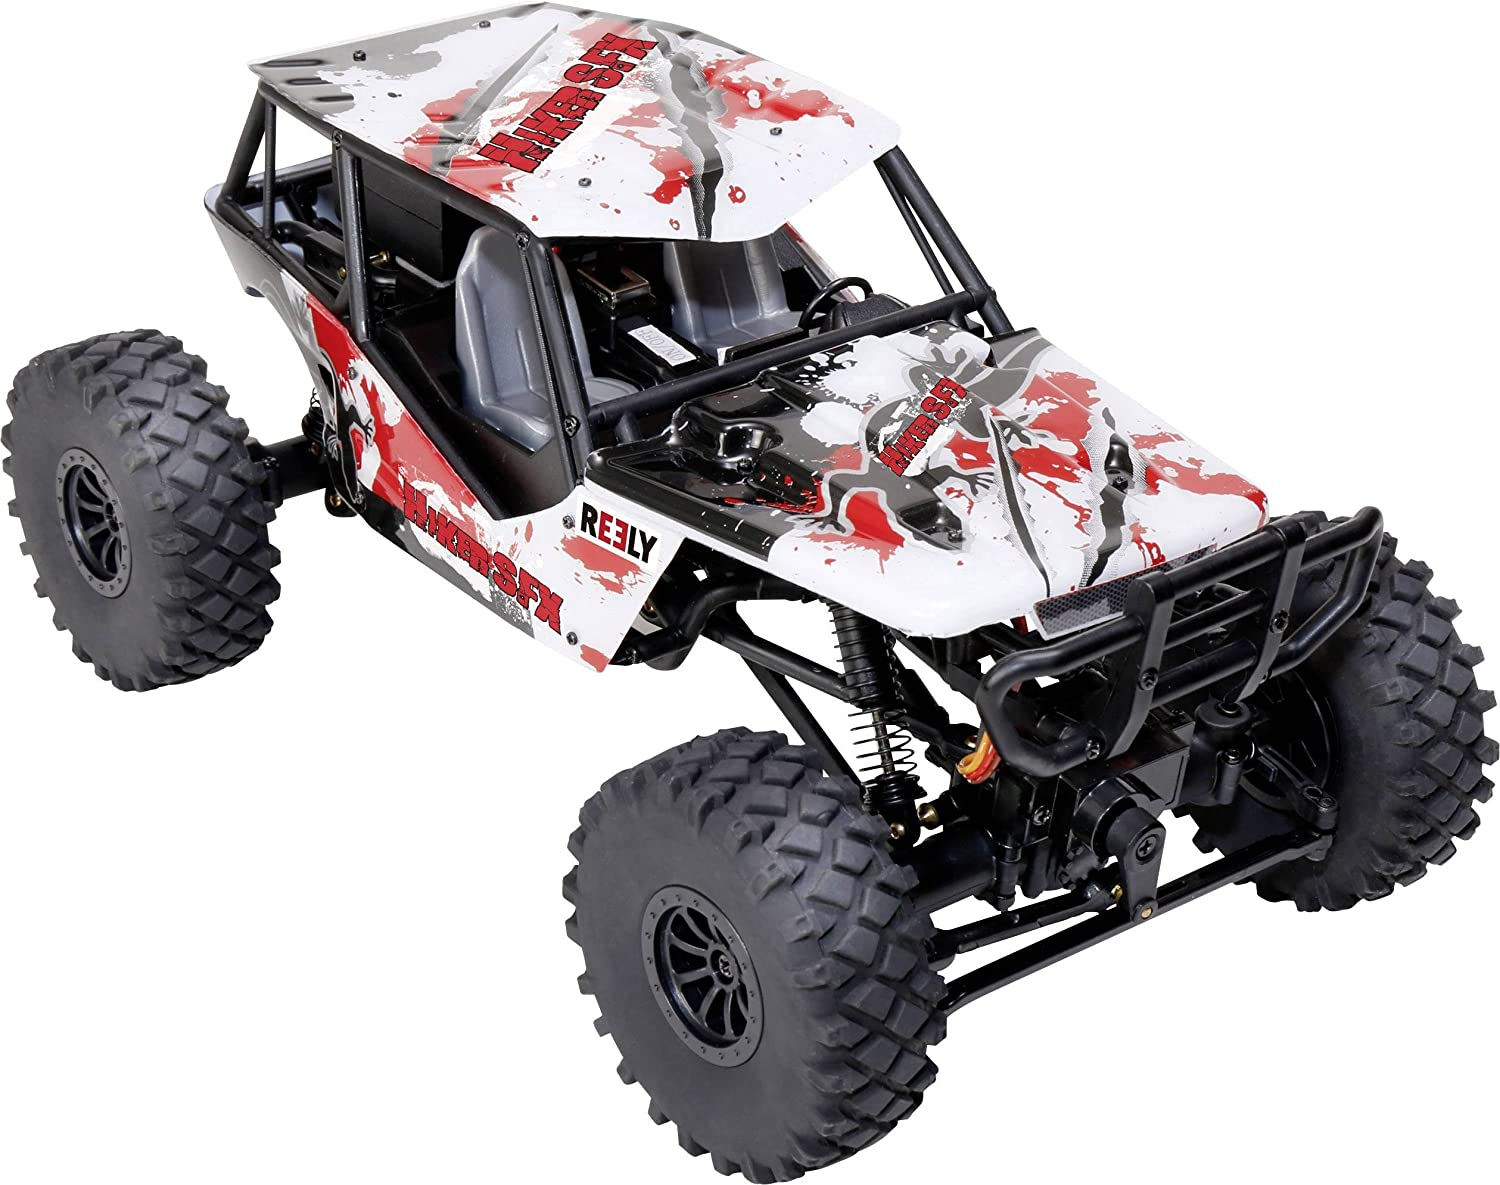 Crawler Reely Hiker SFX Brushed 118 Automodello Elettrica 4WD RtR 2,4 GHz incl. Modulo audio, incl. Batteria e